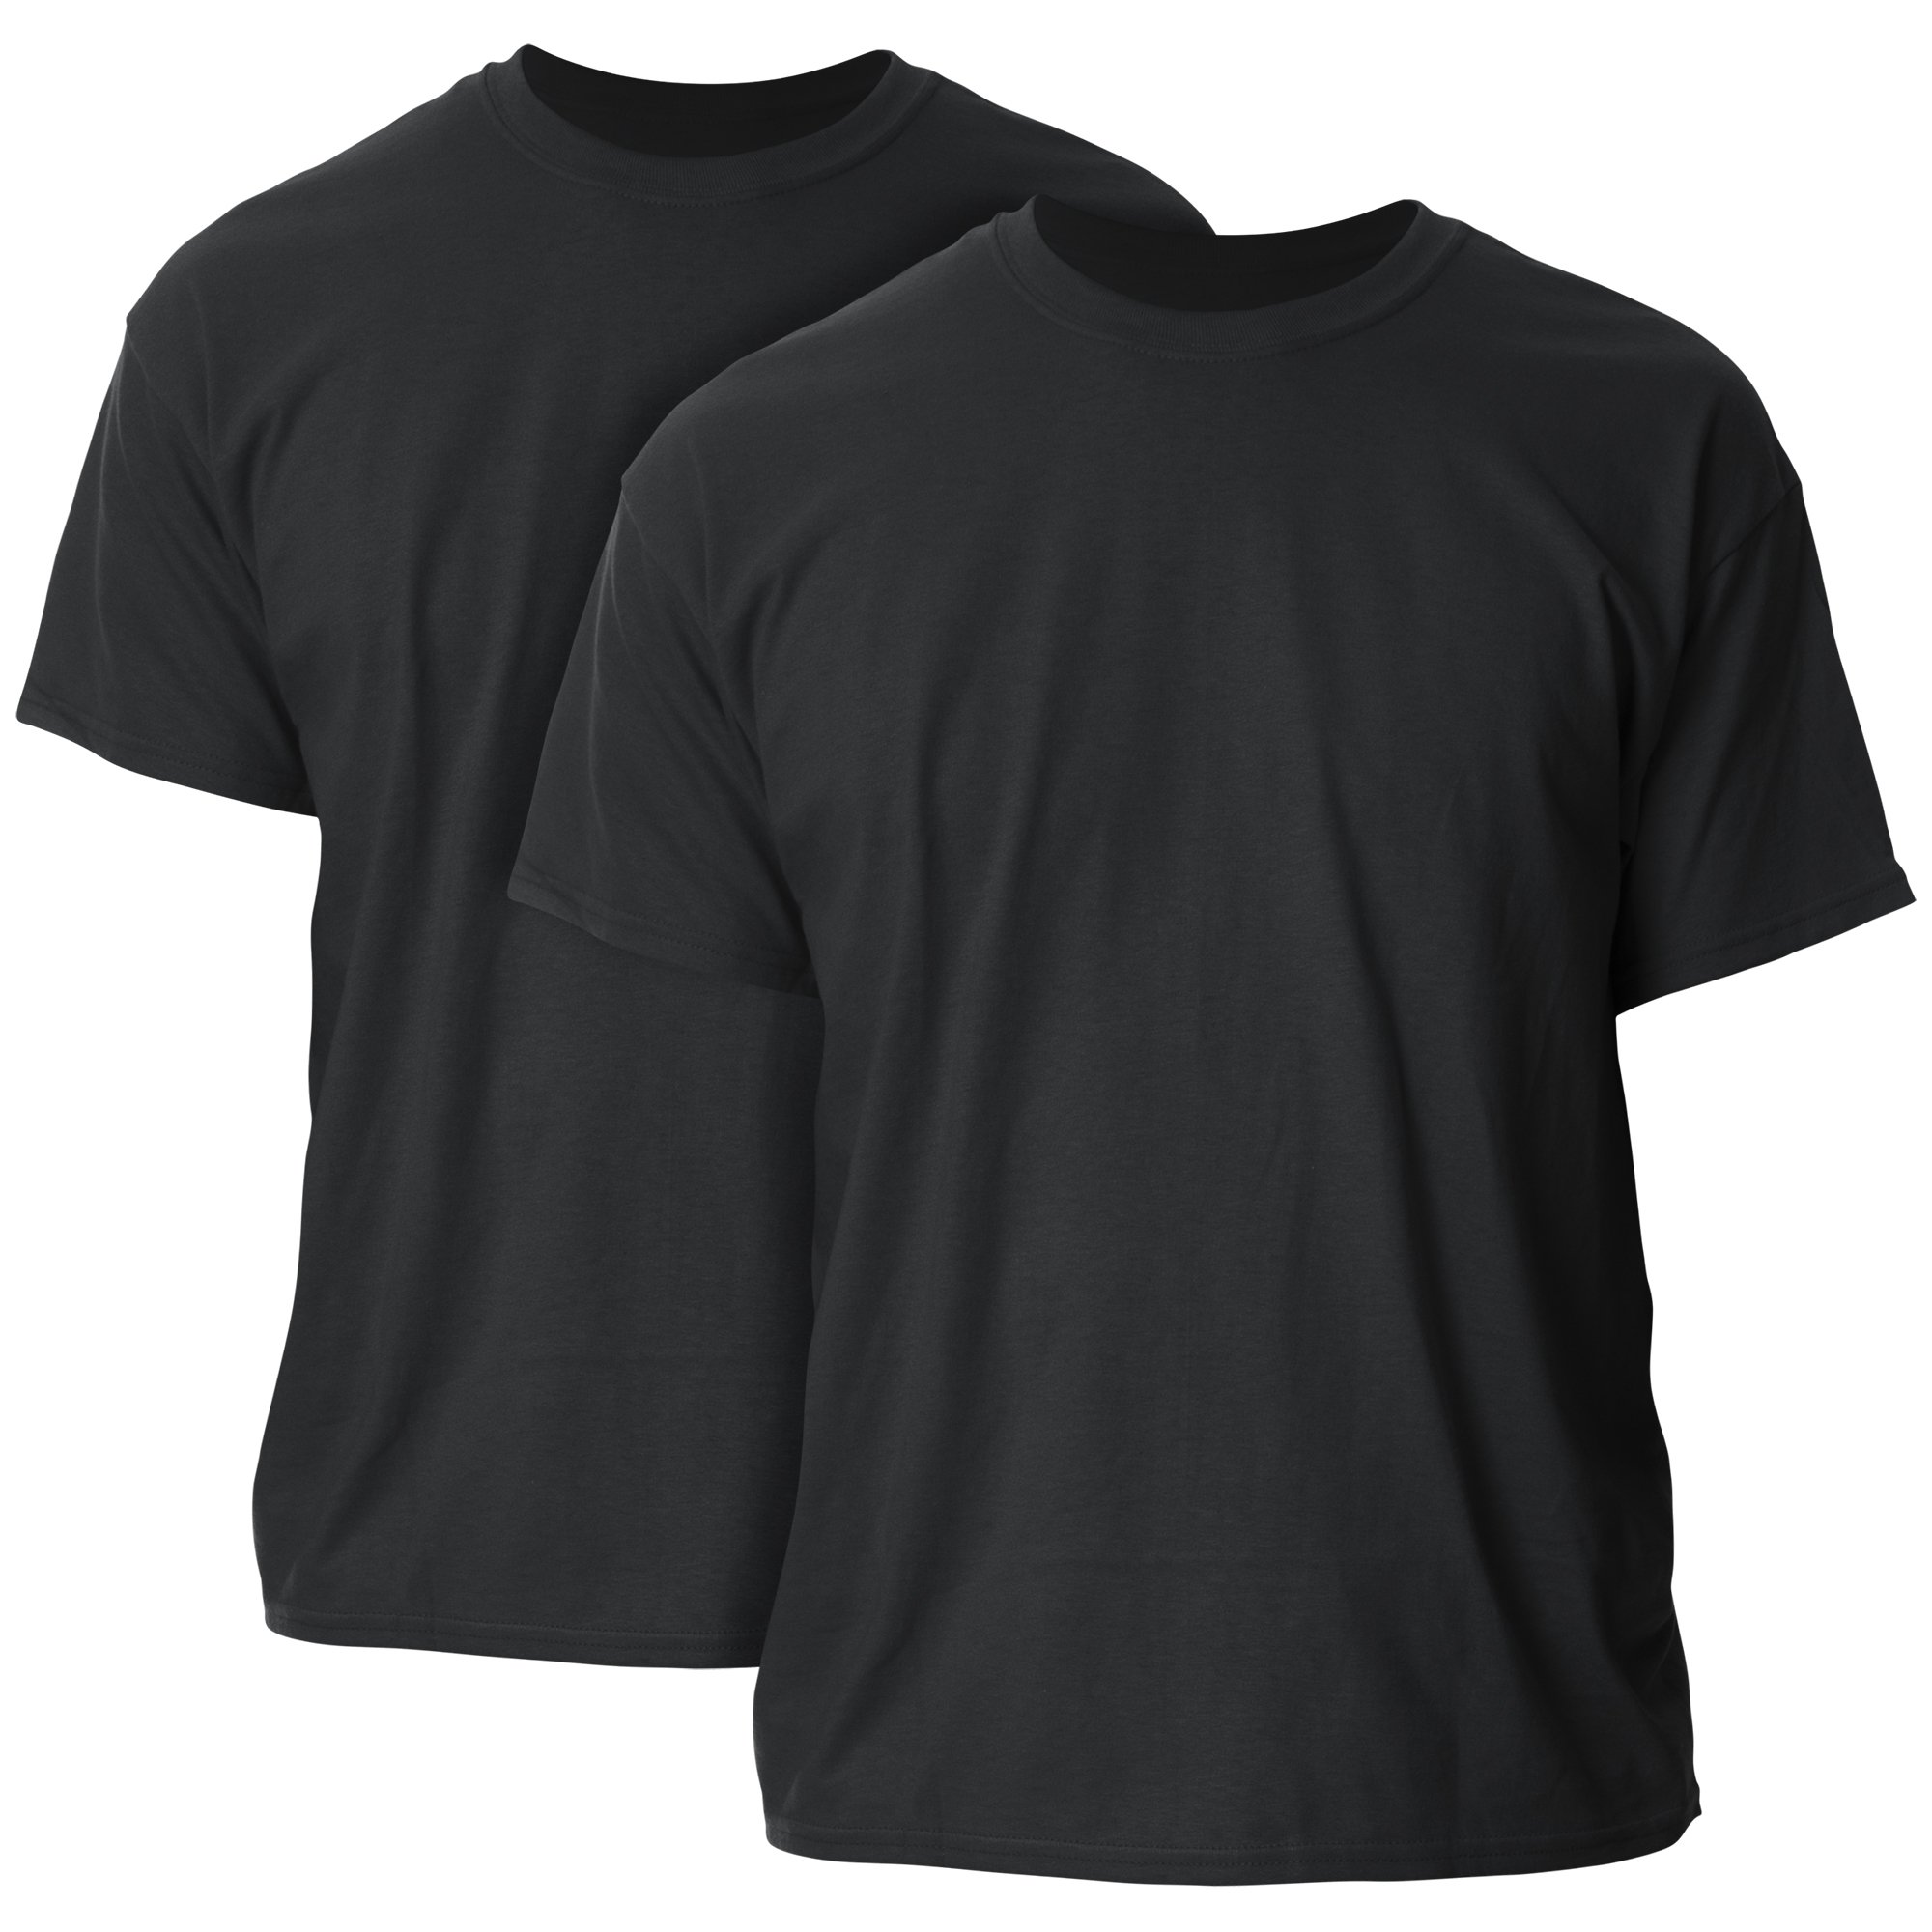 Gildan Men's G2000 Ultra Cotton Adult T-Shirt, 2-Pack, Black, 2X-Large by Gildan